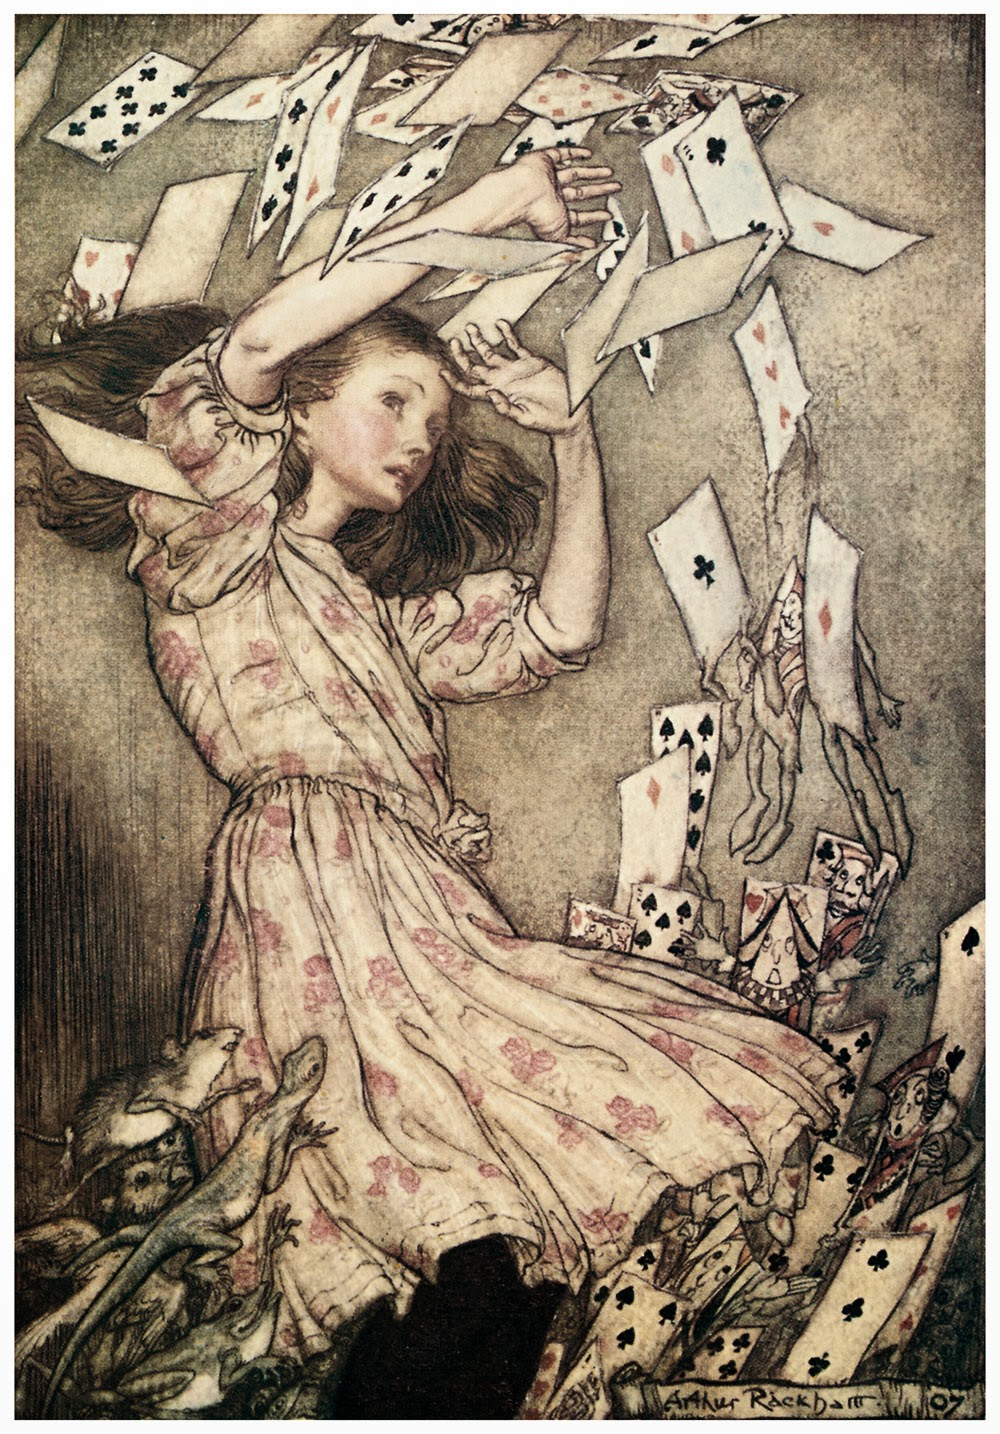 split complementary: Illustration Unit: Arthur Rackham